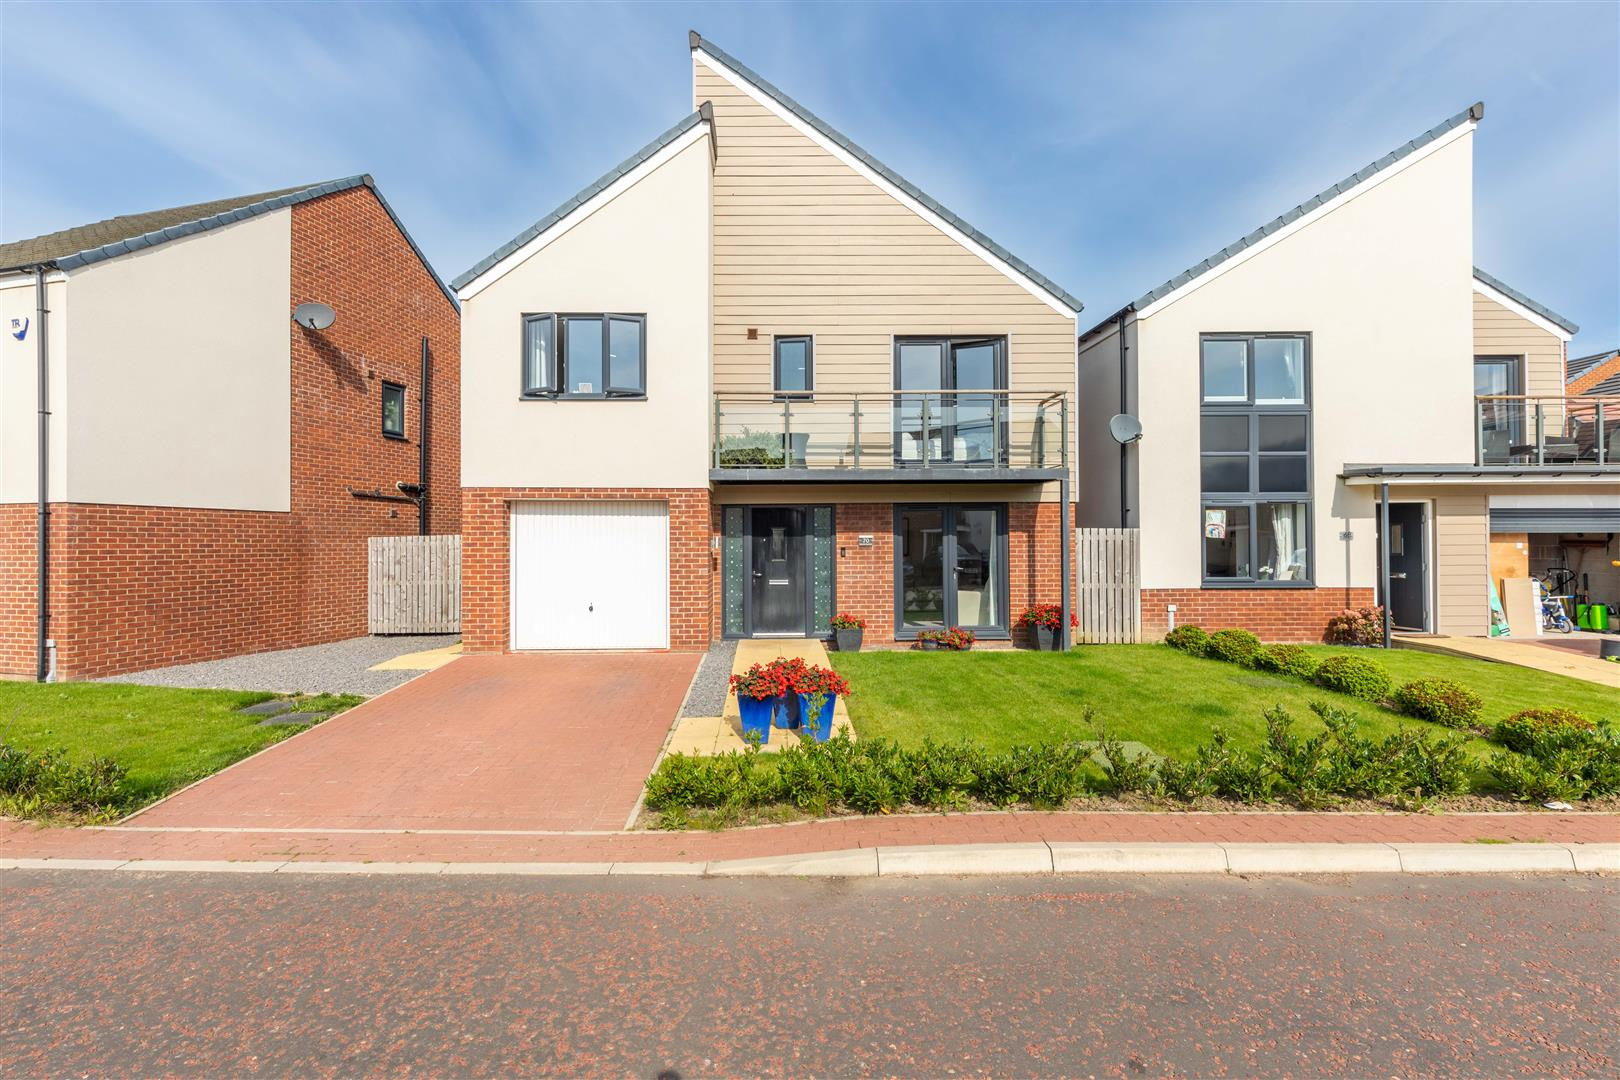 5 bed detached house for sale in Newcastle Upon Tyne, NE13 9DN - Property Image 1